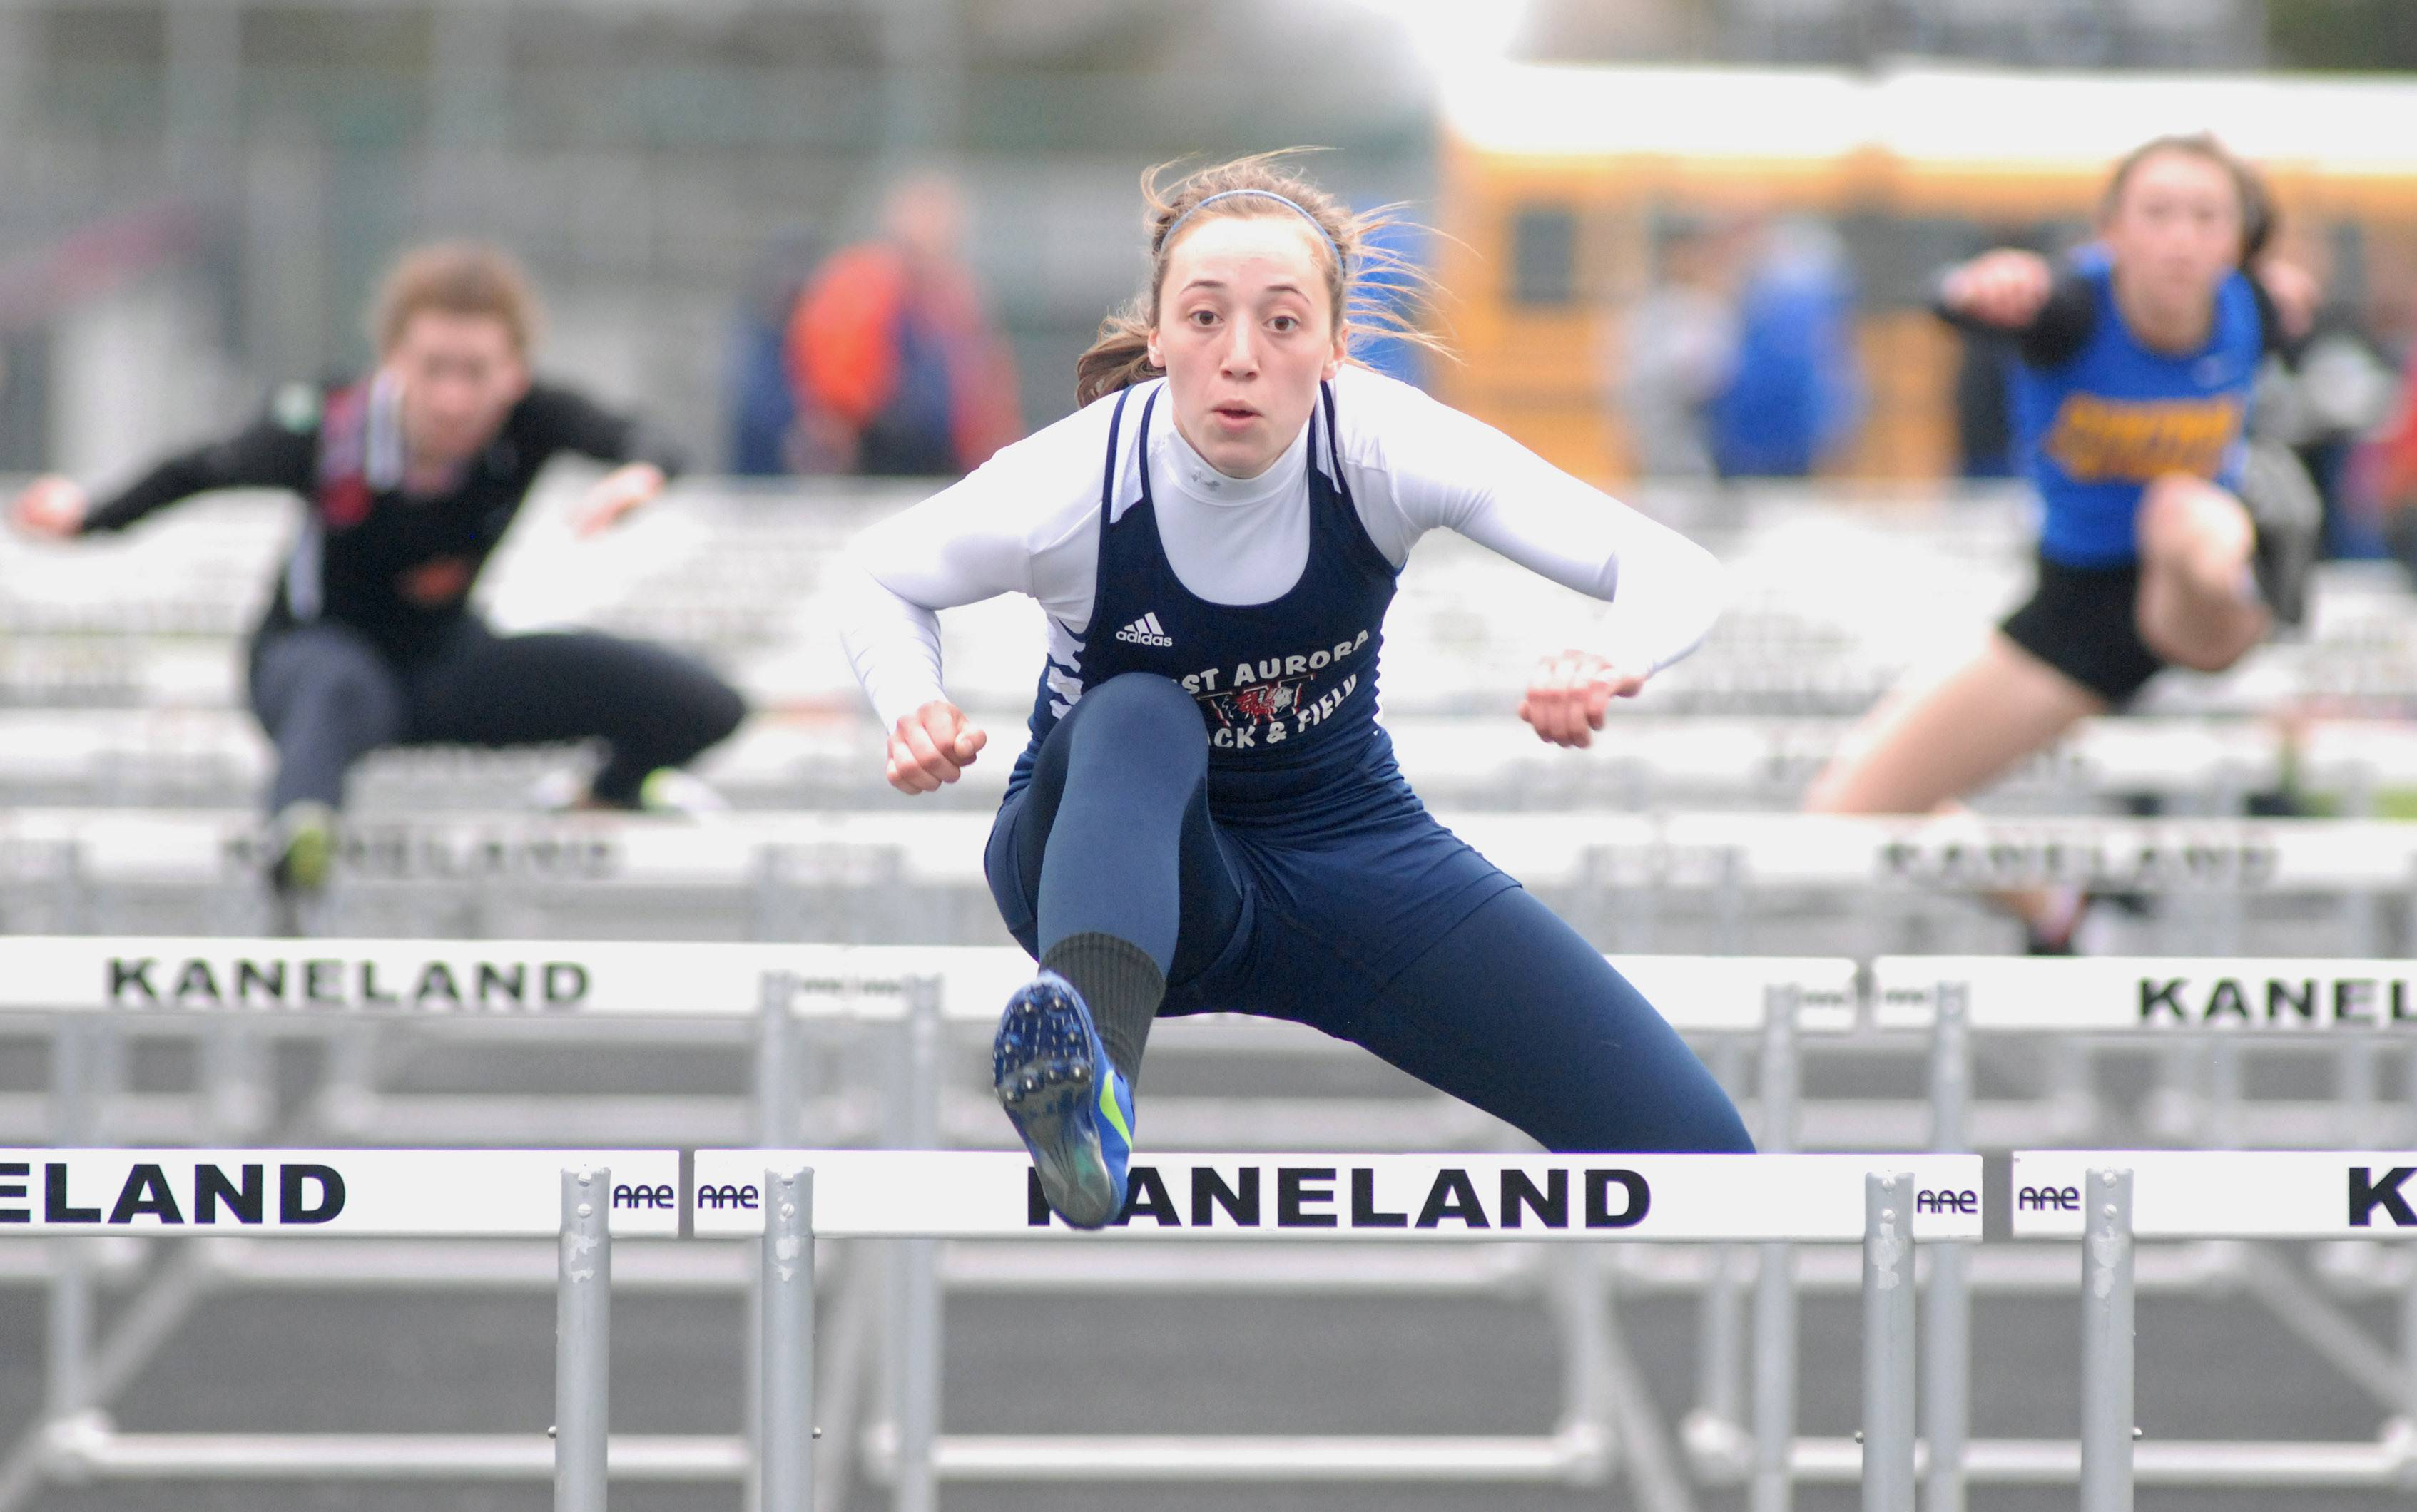 Emma Spagnola led West Aurora to the Kane County championship Friday night hosted by Kaneland in Maple Park.